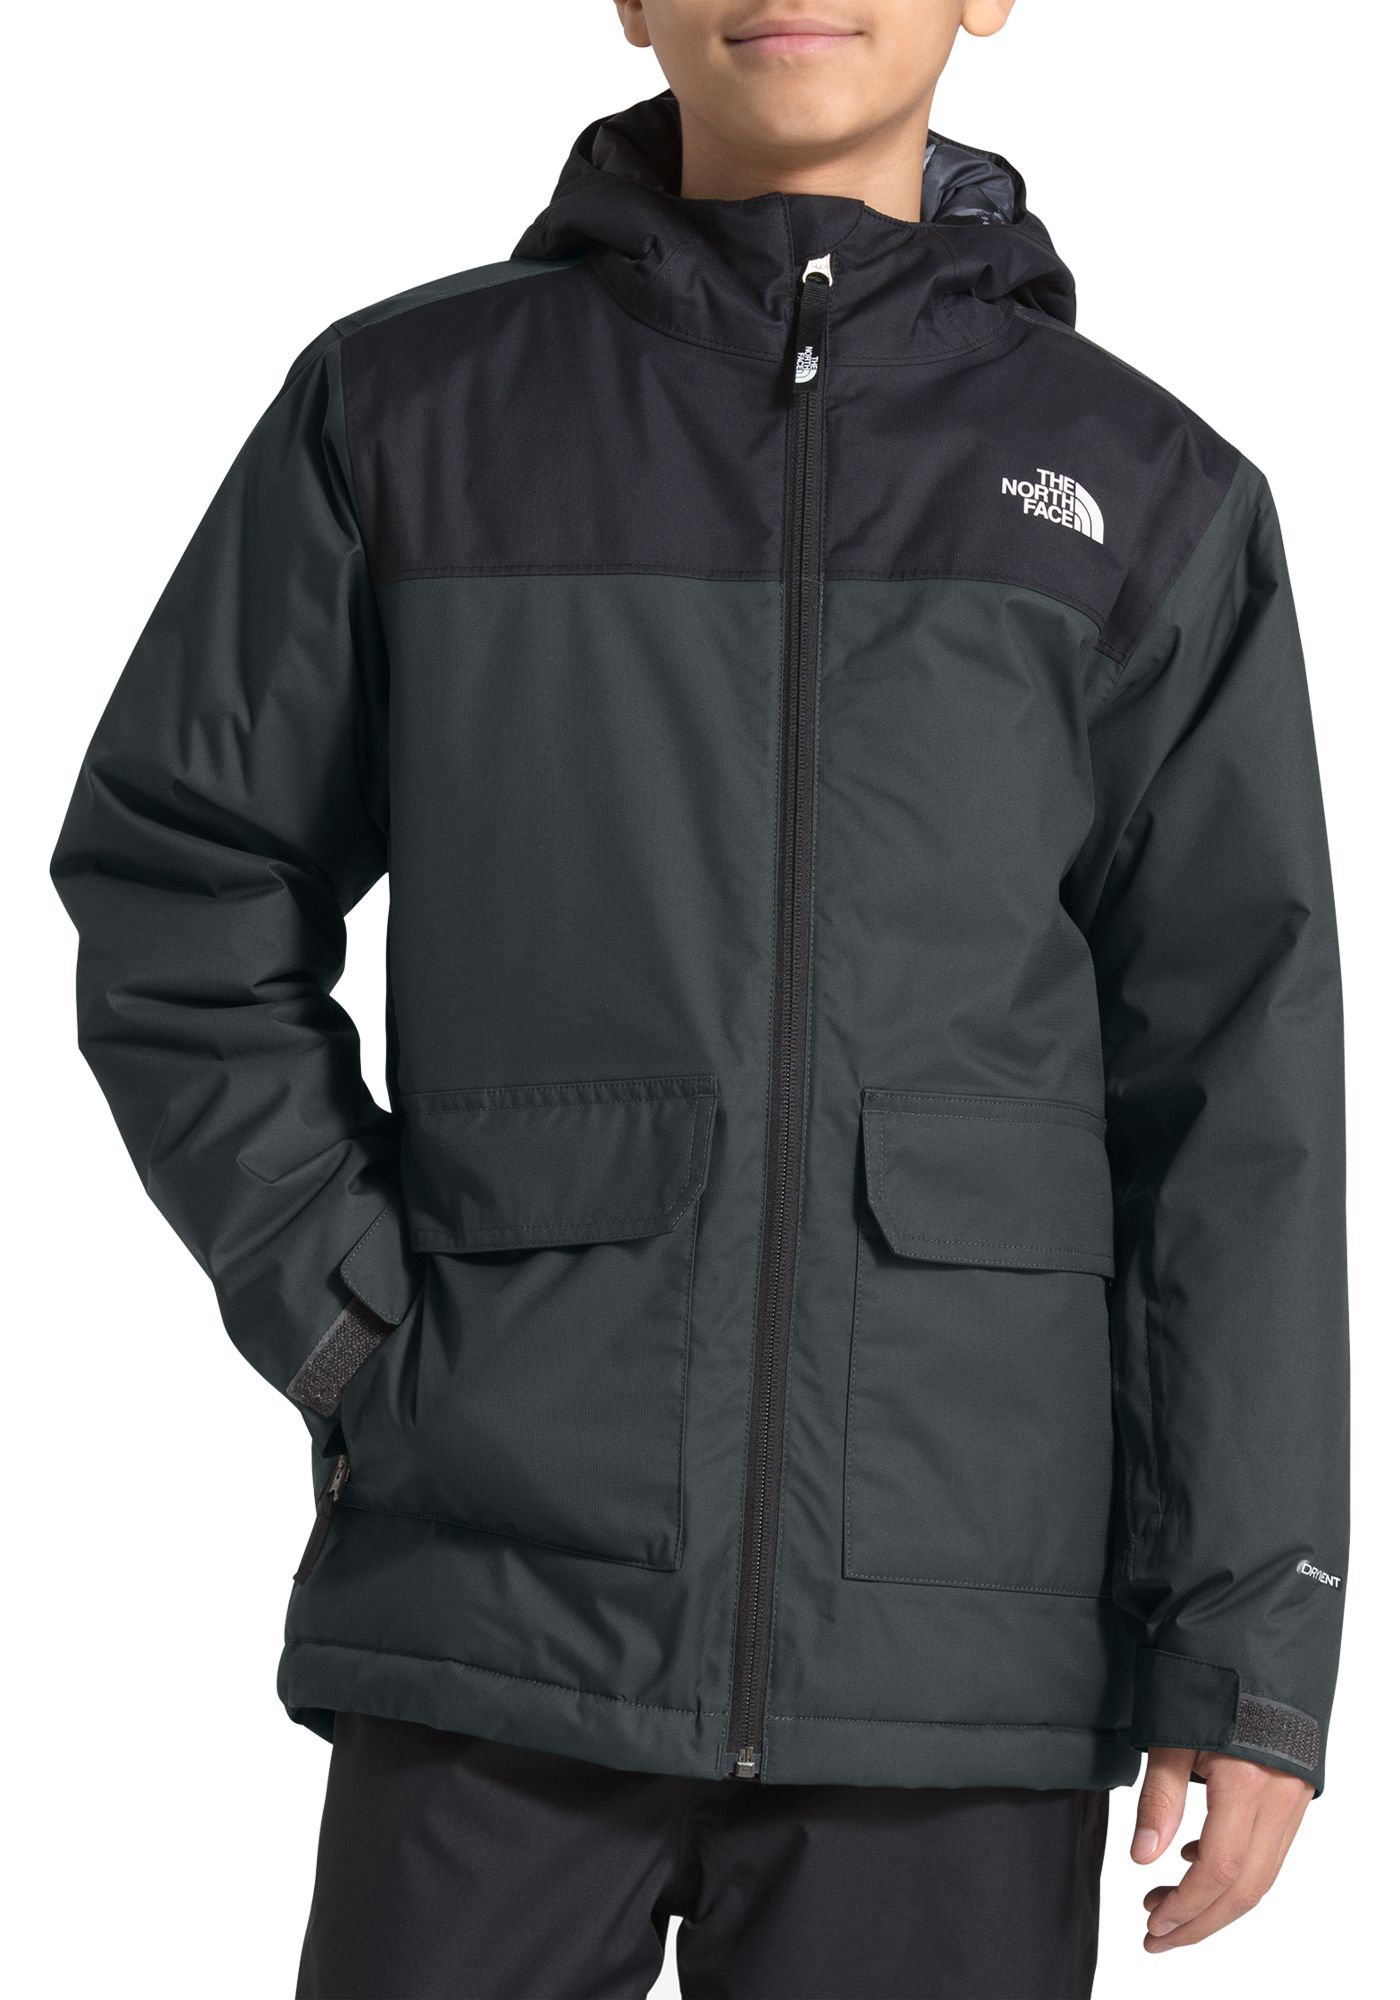 The North Face Boys' Freedom Insulated Jacket